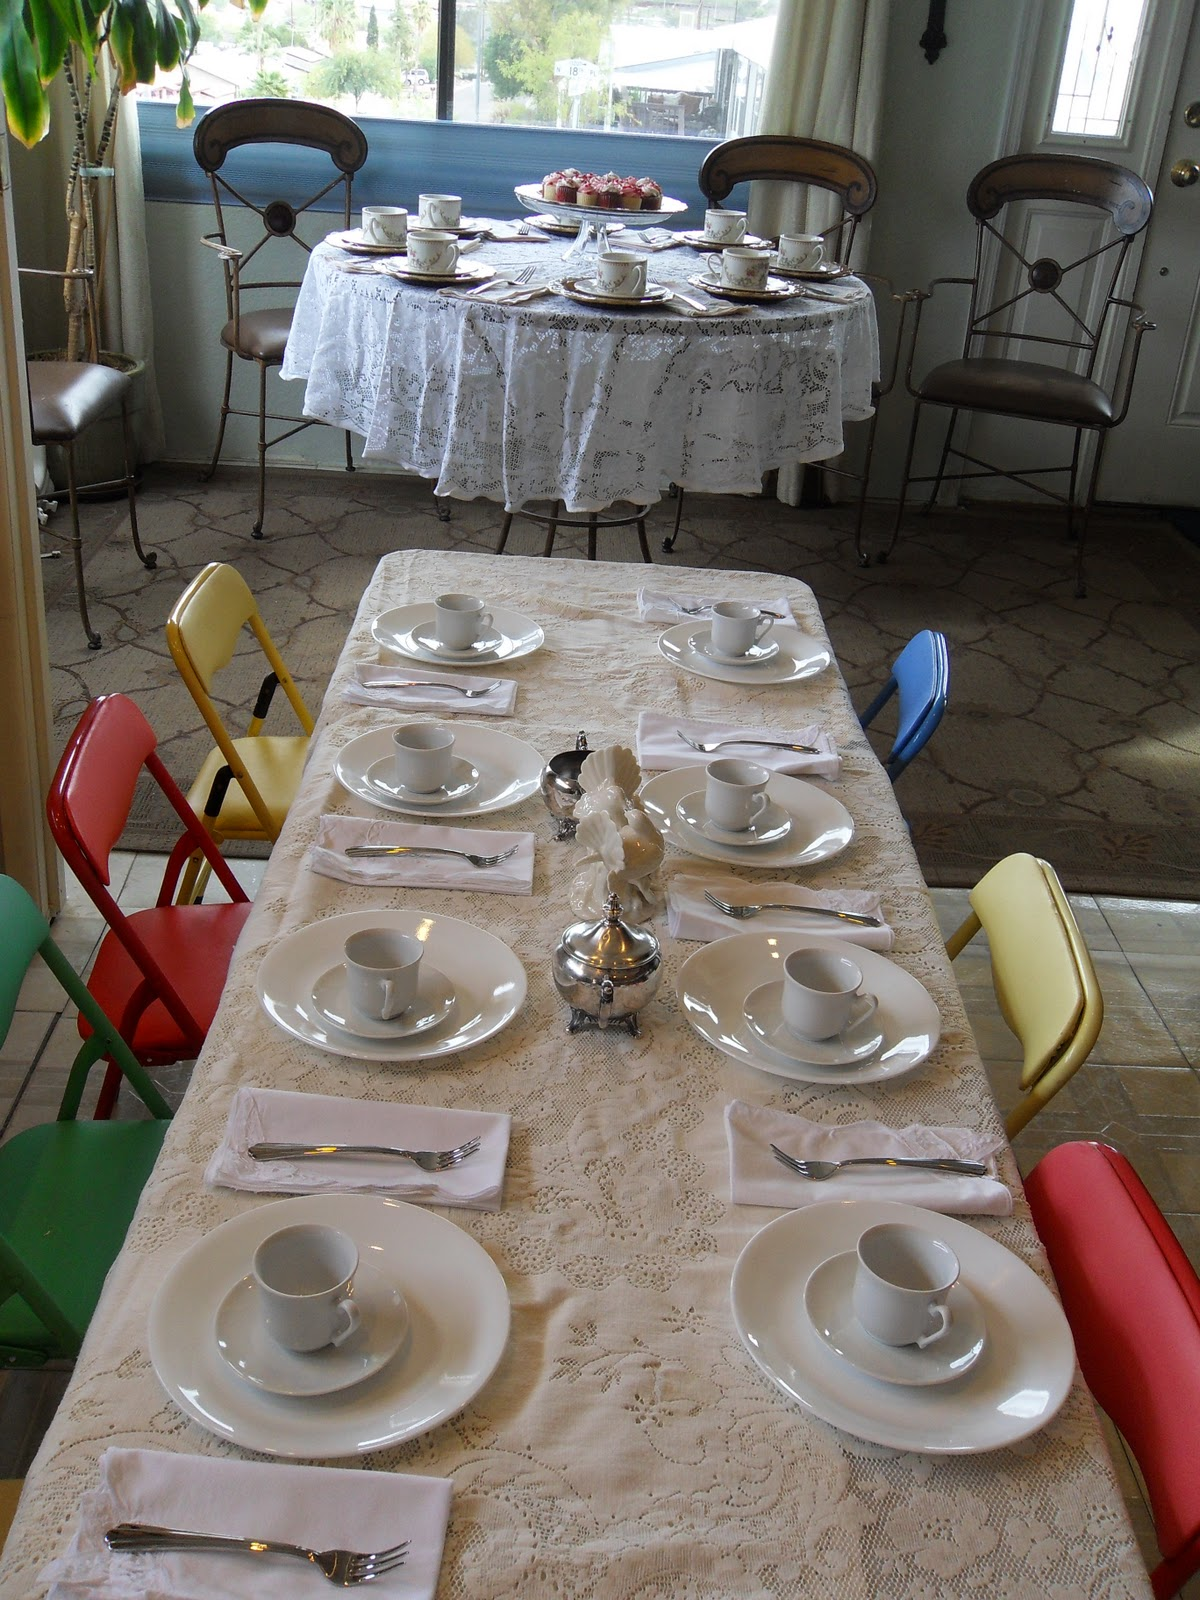 Kids tea party table - Oh The Looks On The Kids Faces When They Saw The Table Set For Them No Disposable Plates Or Kid Friendly Dishes But Real China Cloth Napkins Tiny Seafood